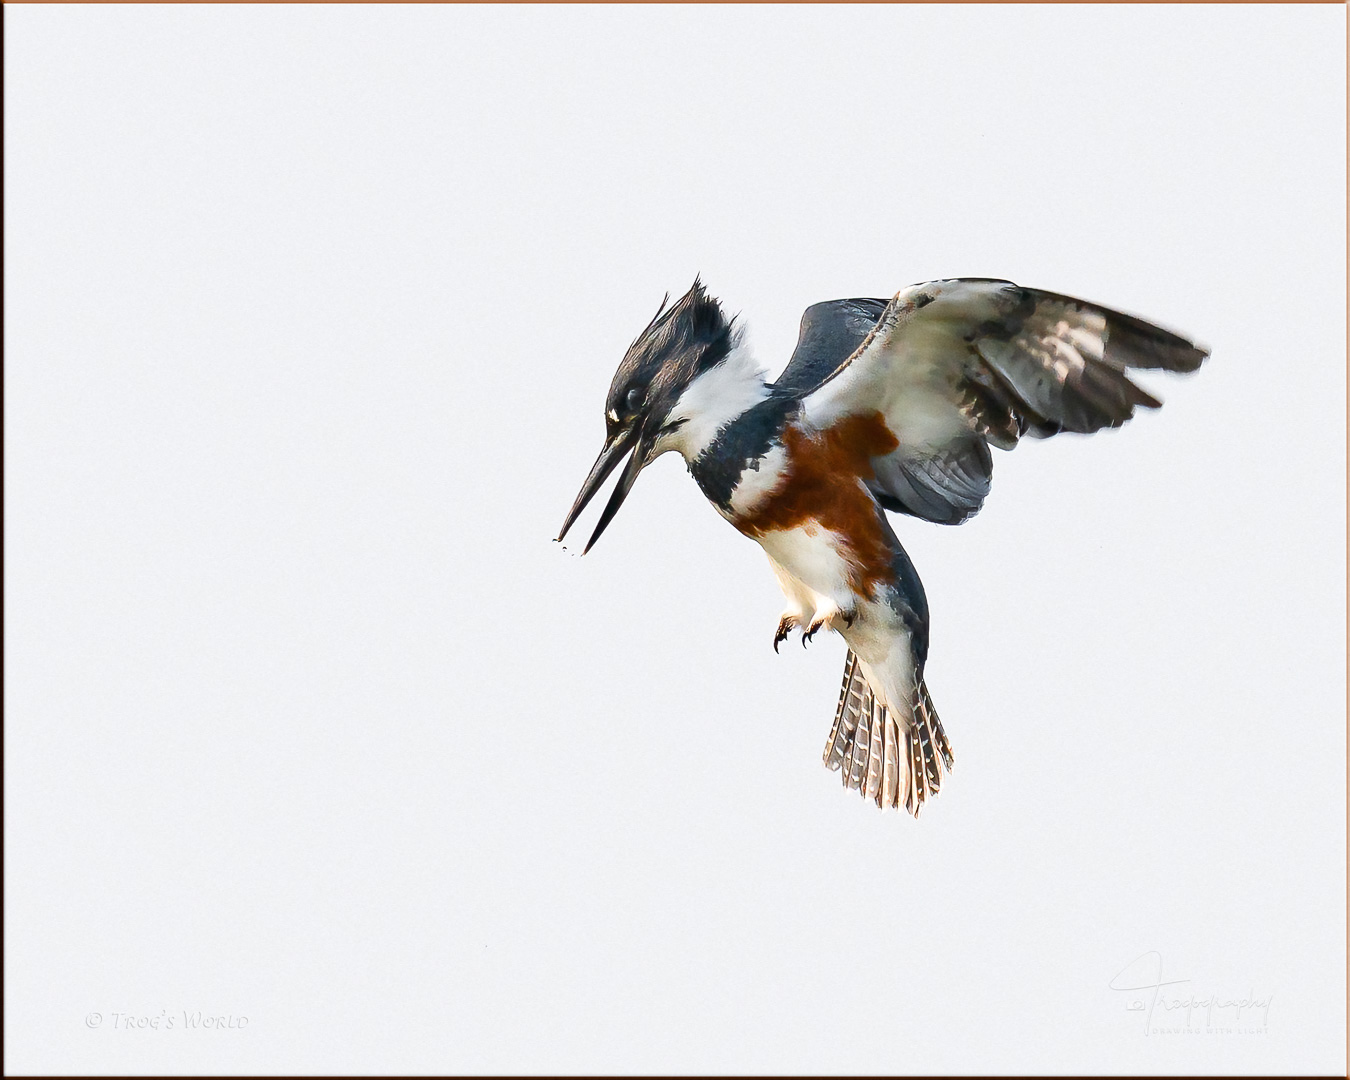 Belted Kingfisher hovering over a river